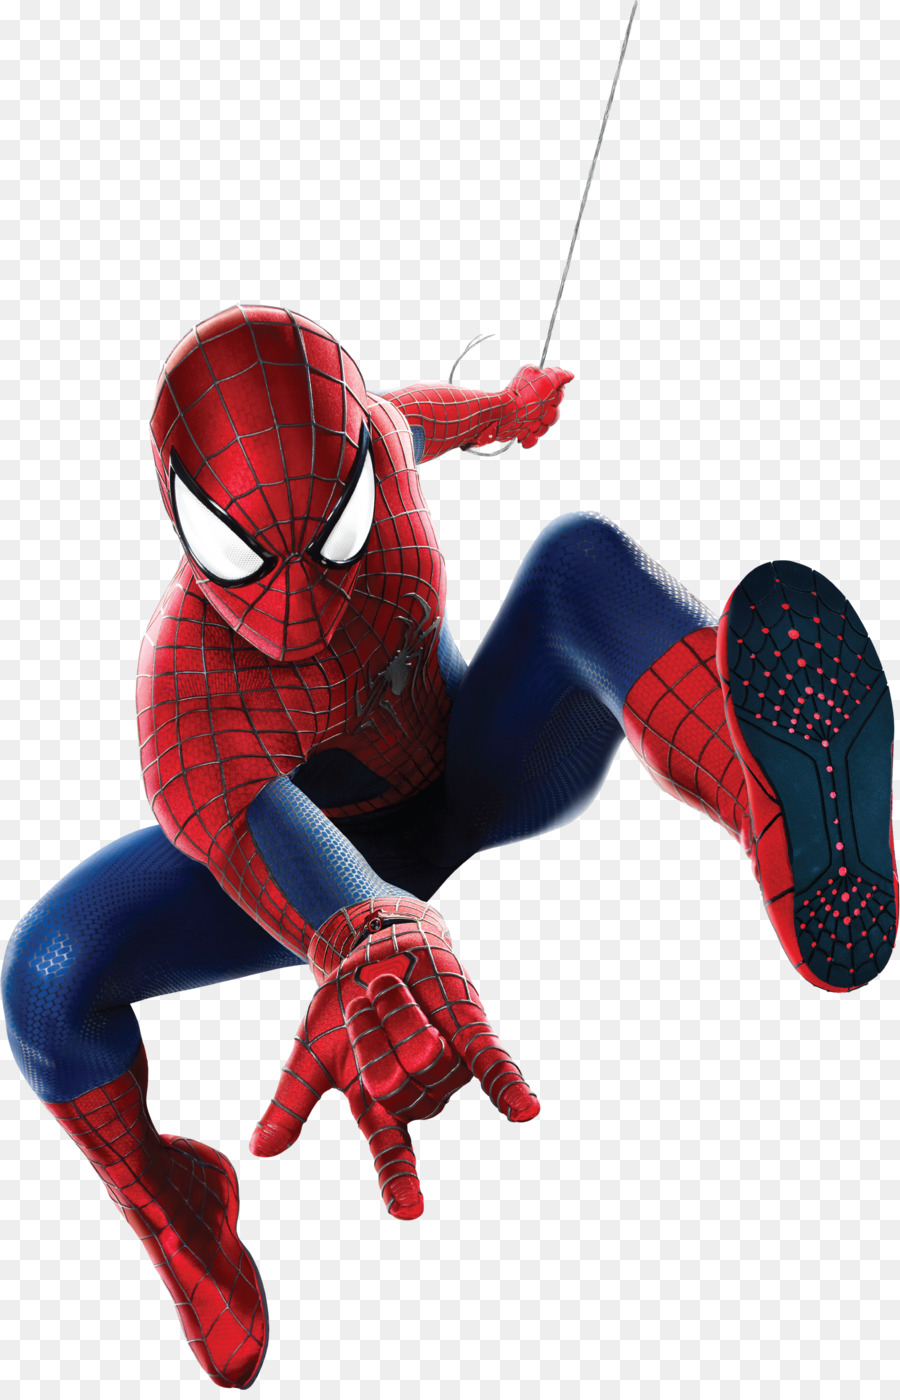 The amazing spider man 2 computer icons spiderman png - Images spiderman ...